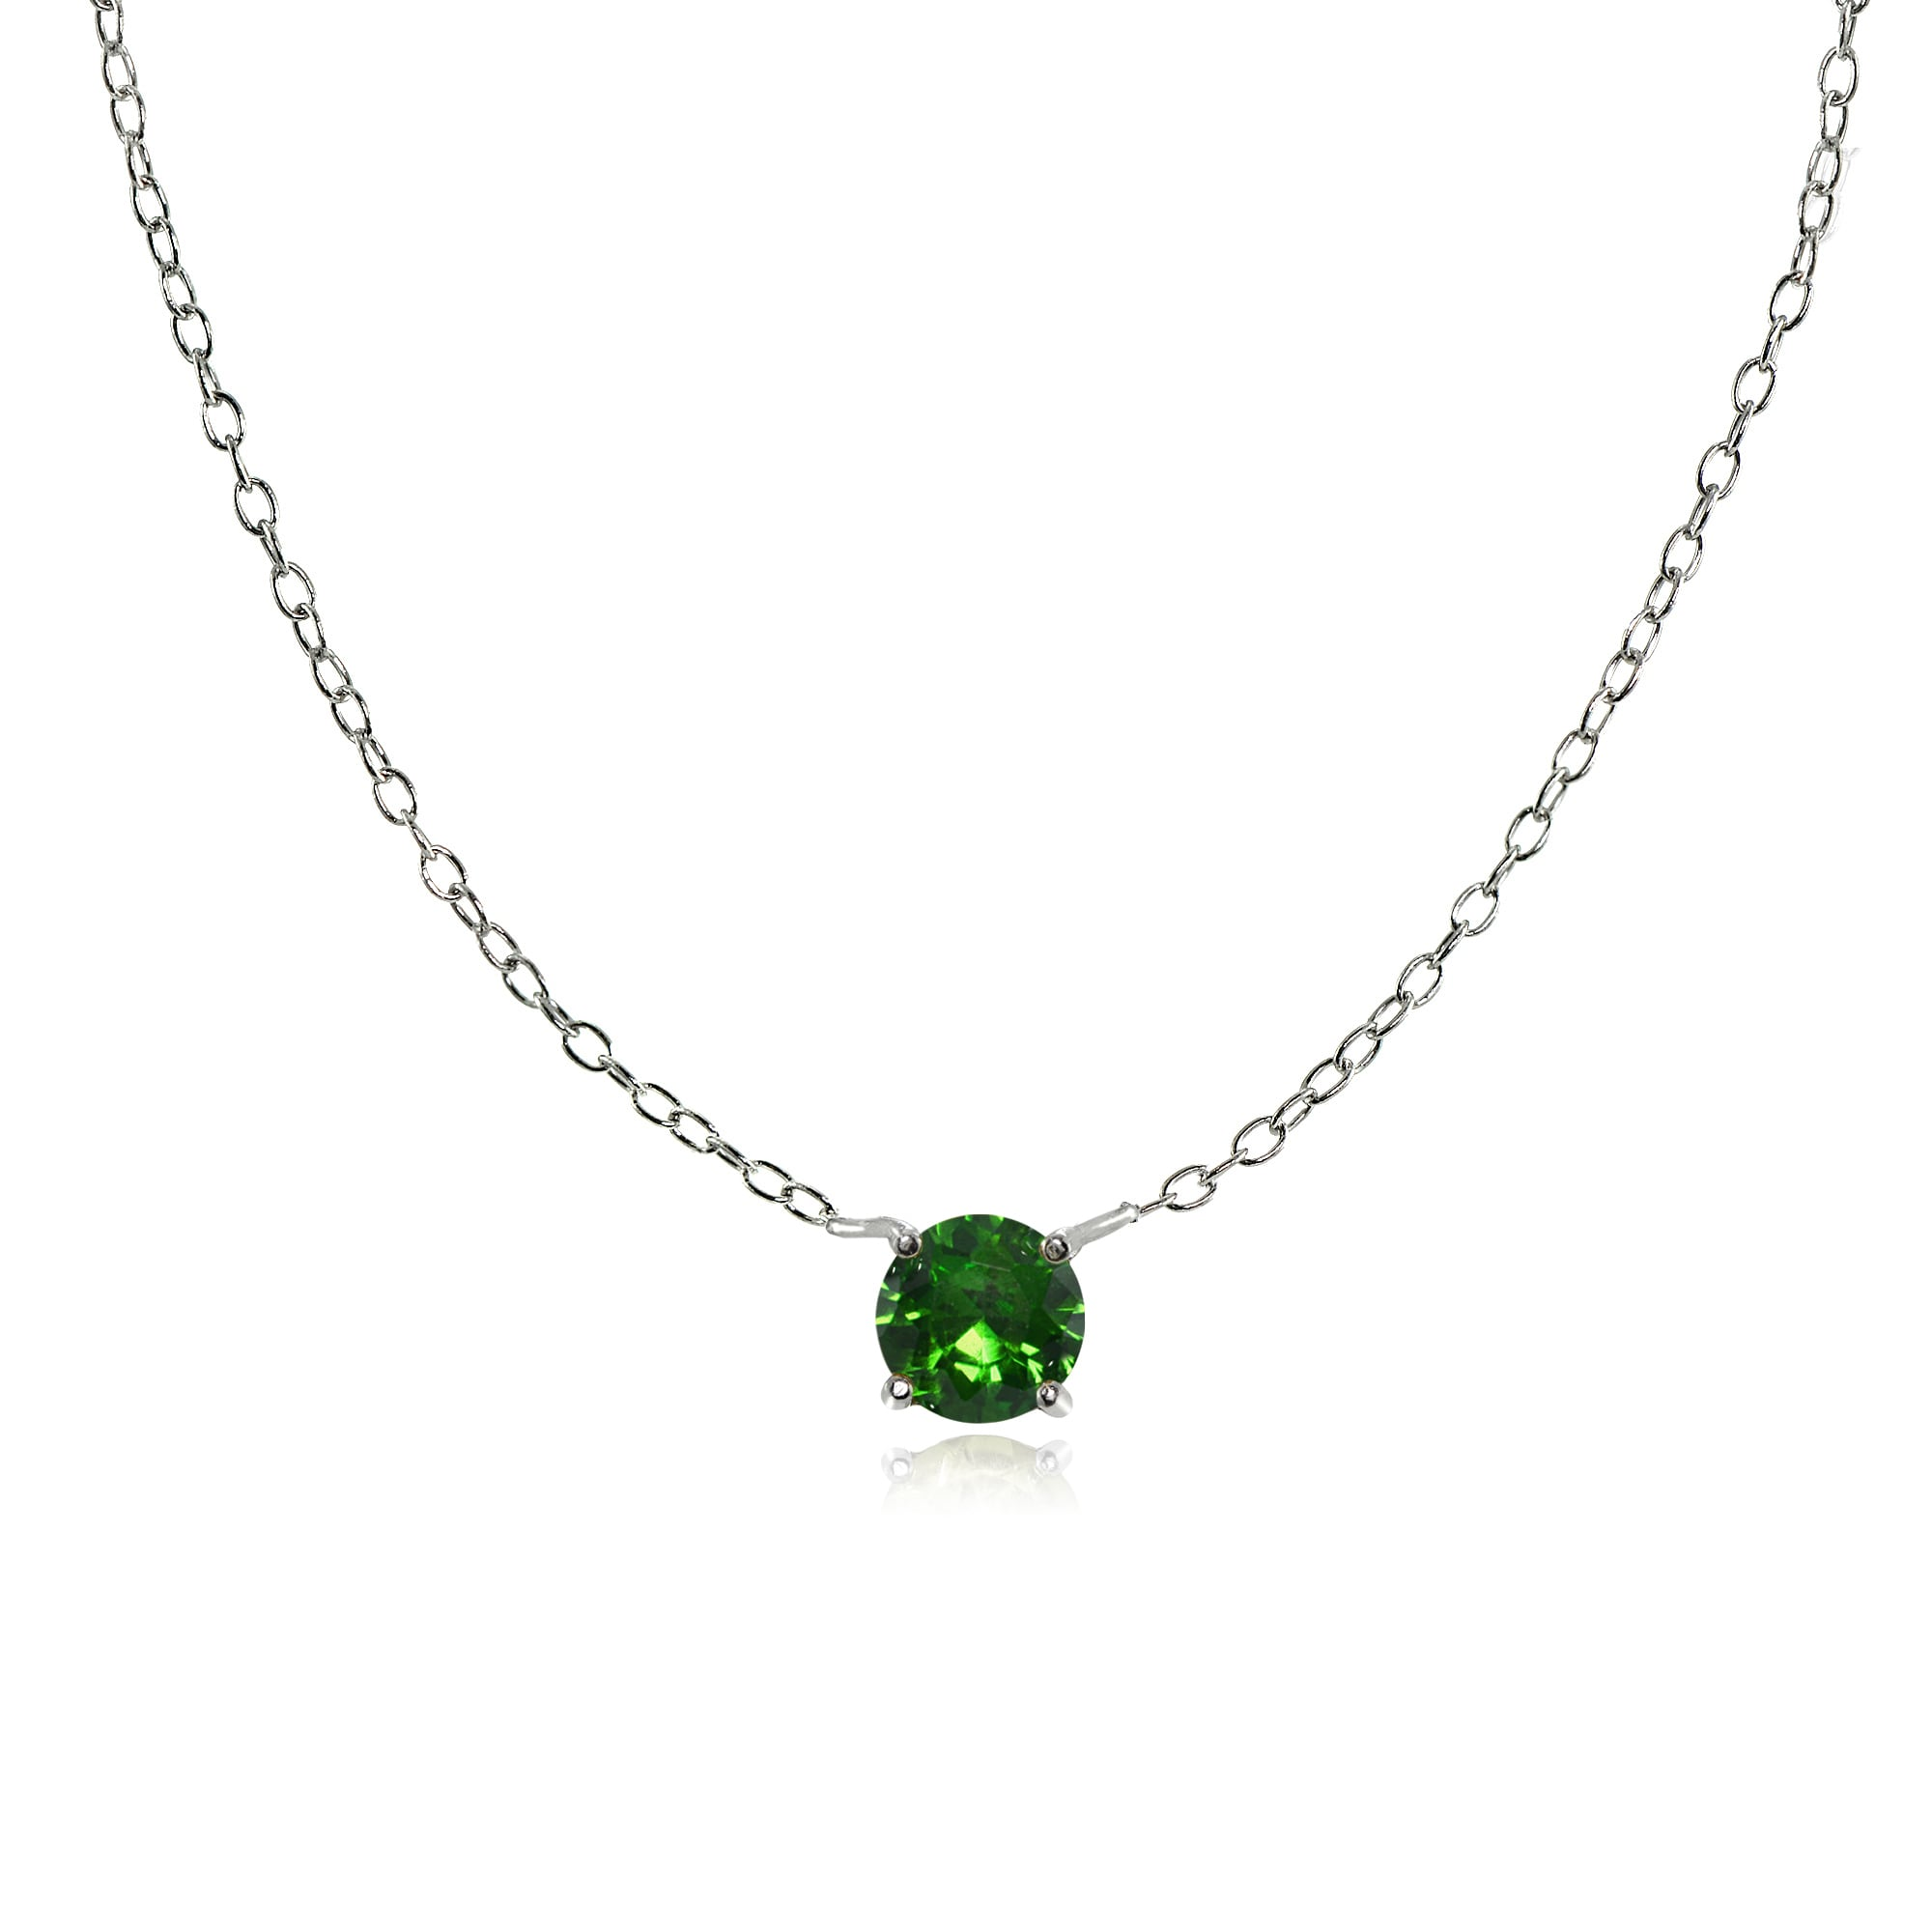 Everyday Necklace Sterling Silver Necklace with Tiny Round Gem